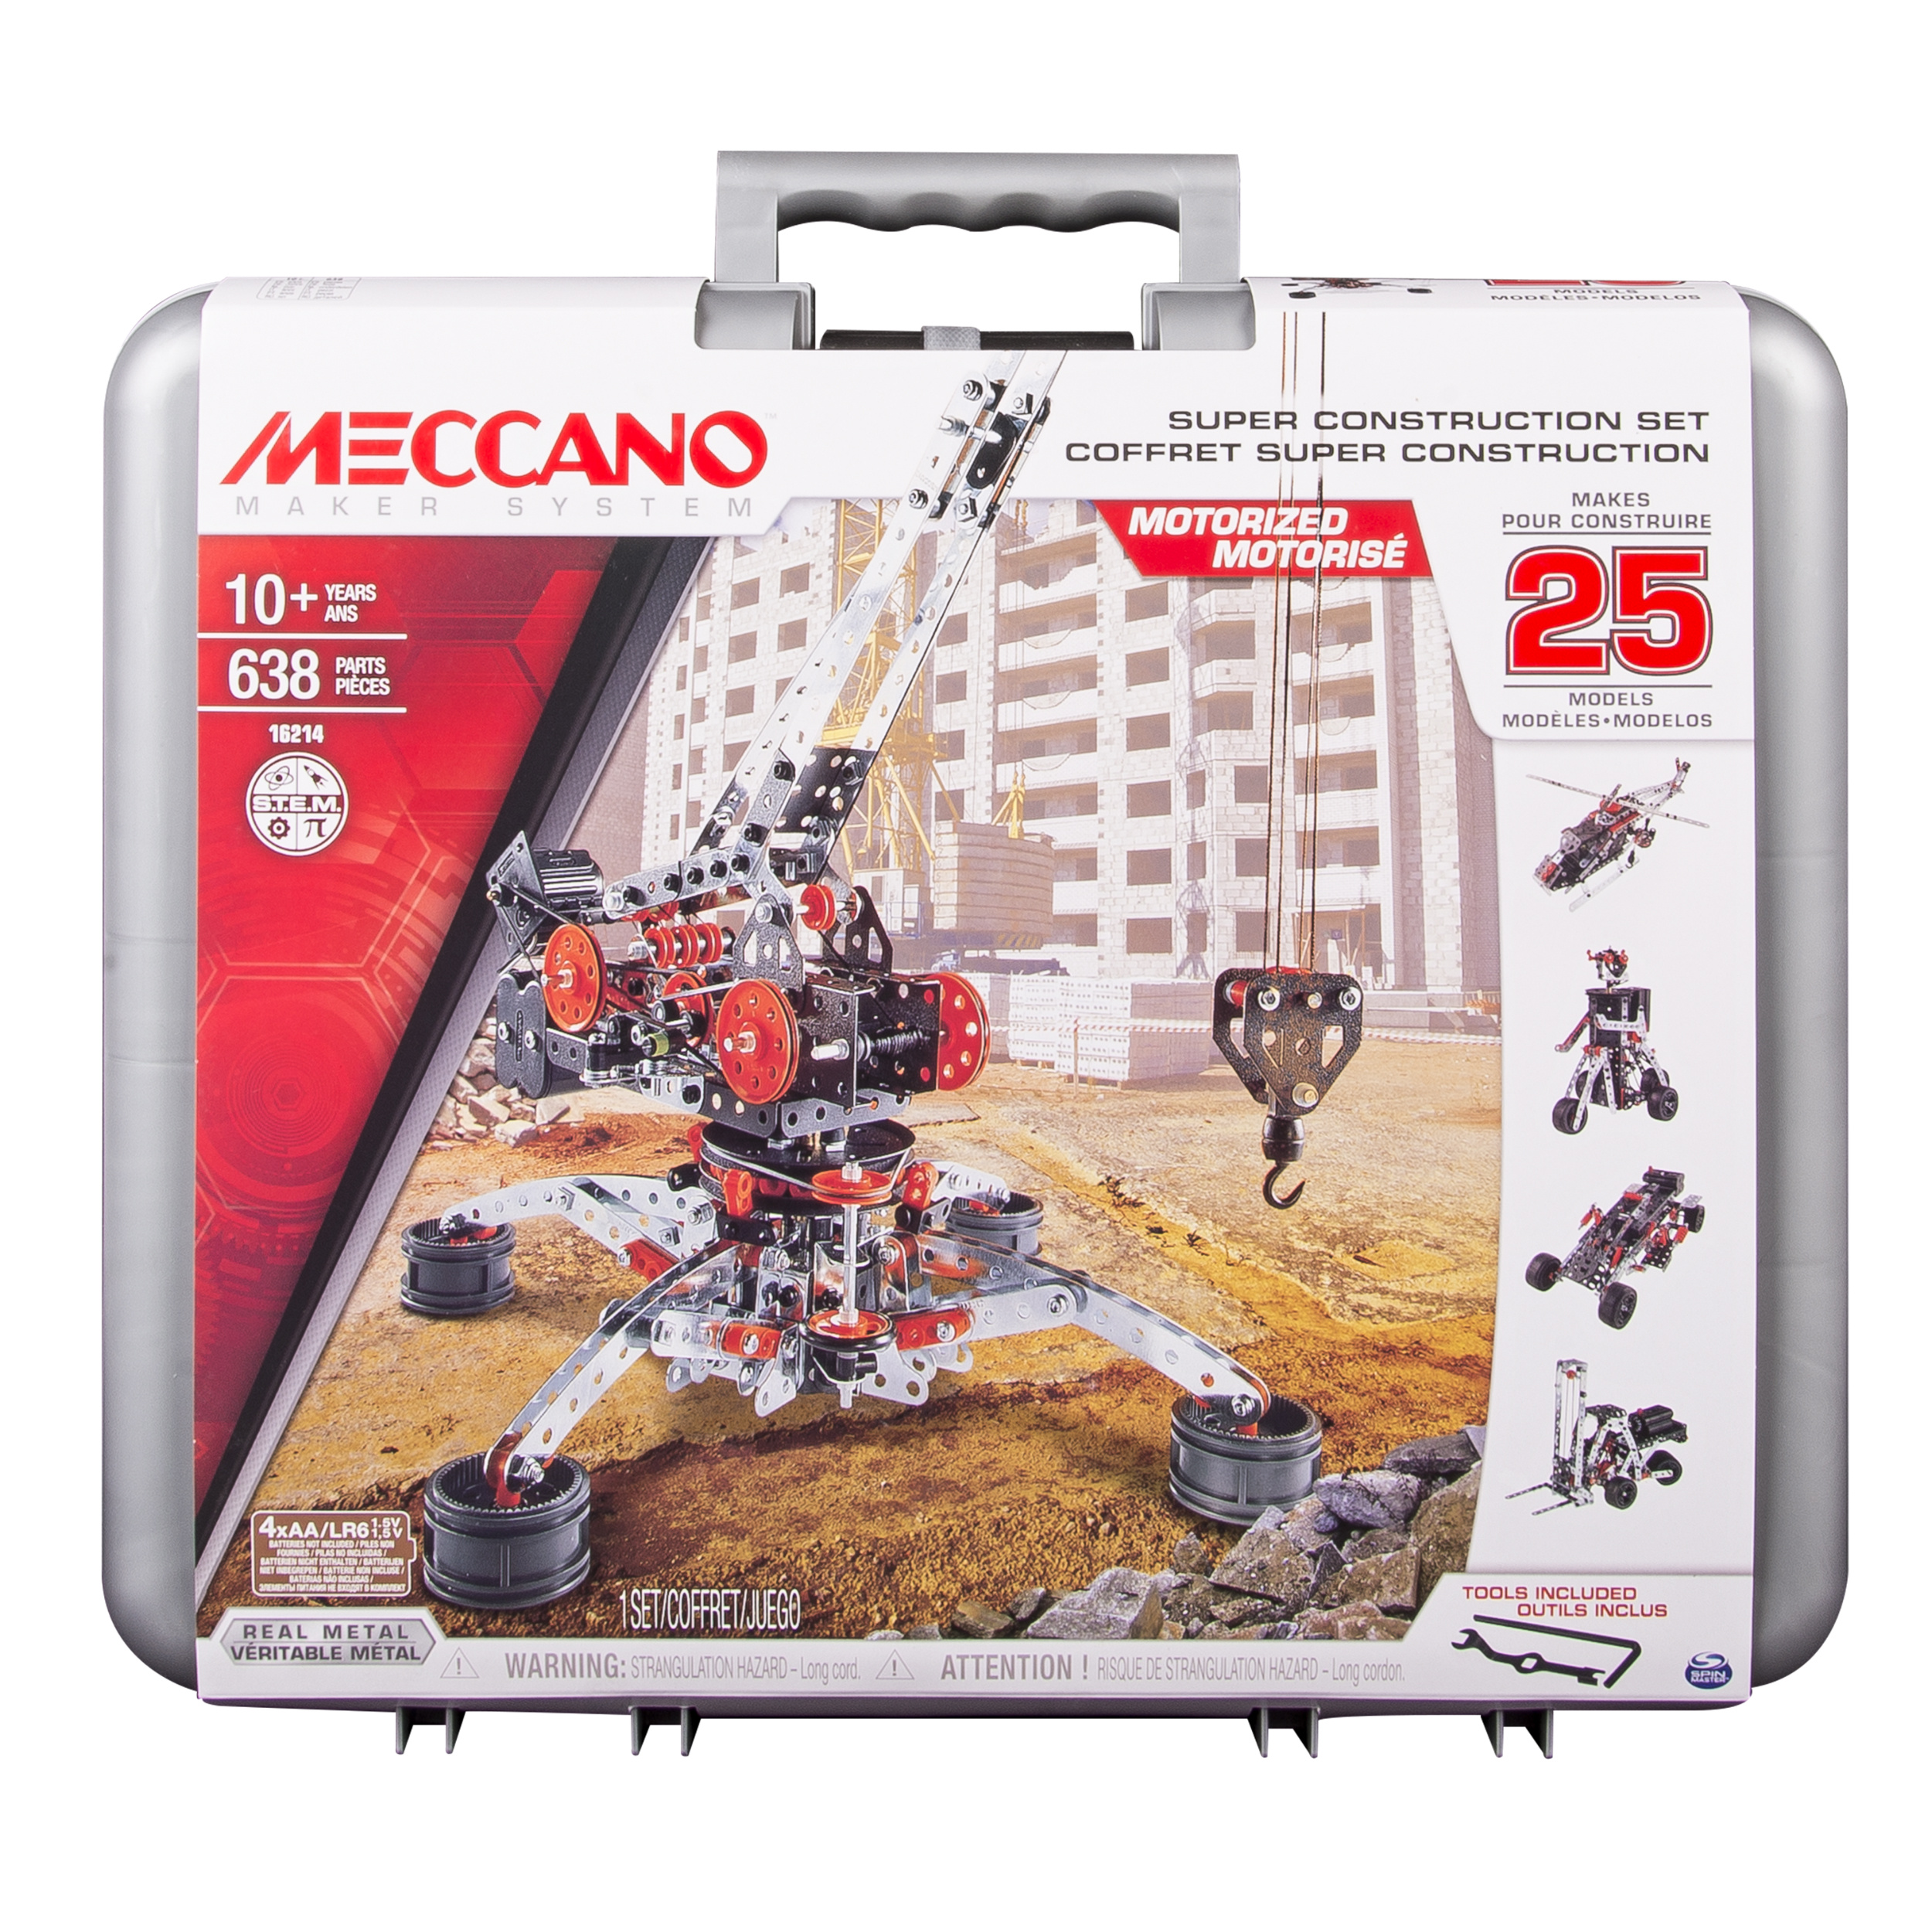 Erector by Meccano Super Construction 25-in-1 Building Set, 638 Parts, For Ages 10+, STEAM Education Toy